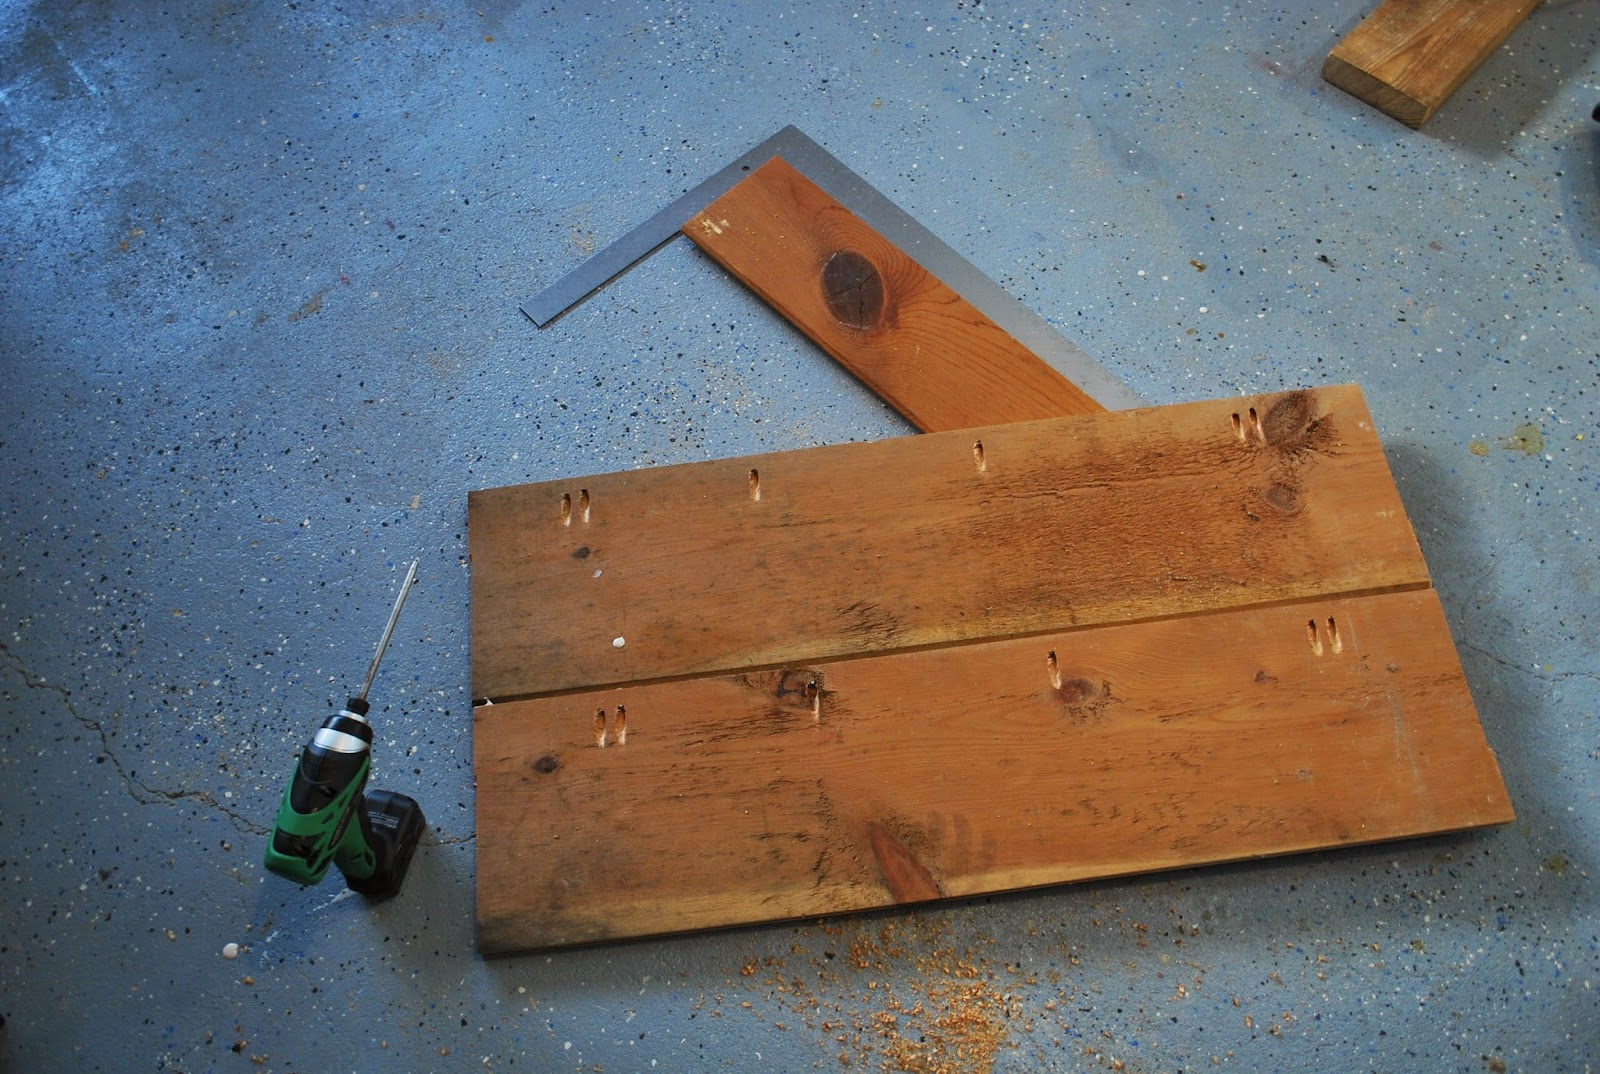 Amazing photo of  screws and wood glue attach the wood paneling for the table top with #996232 color and 1600x1074 pixels